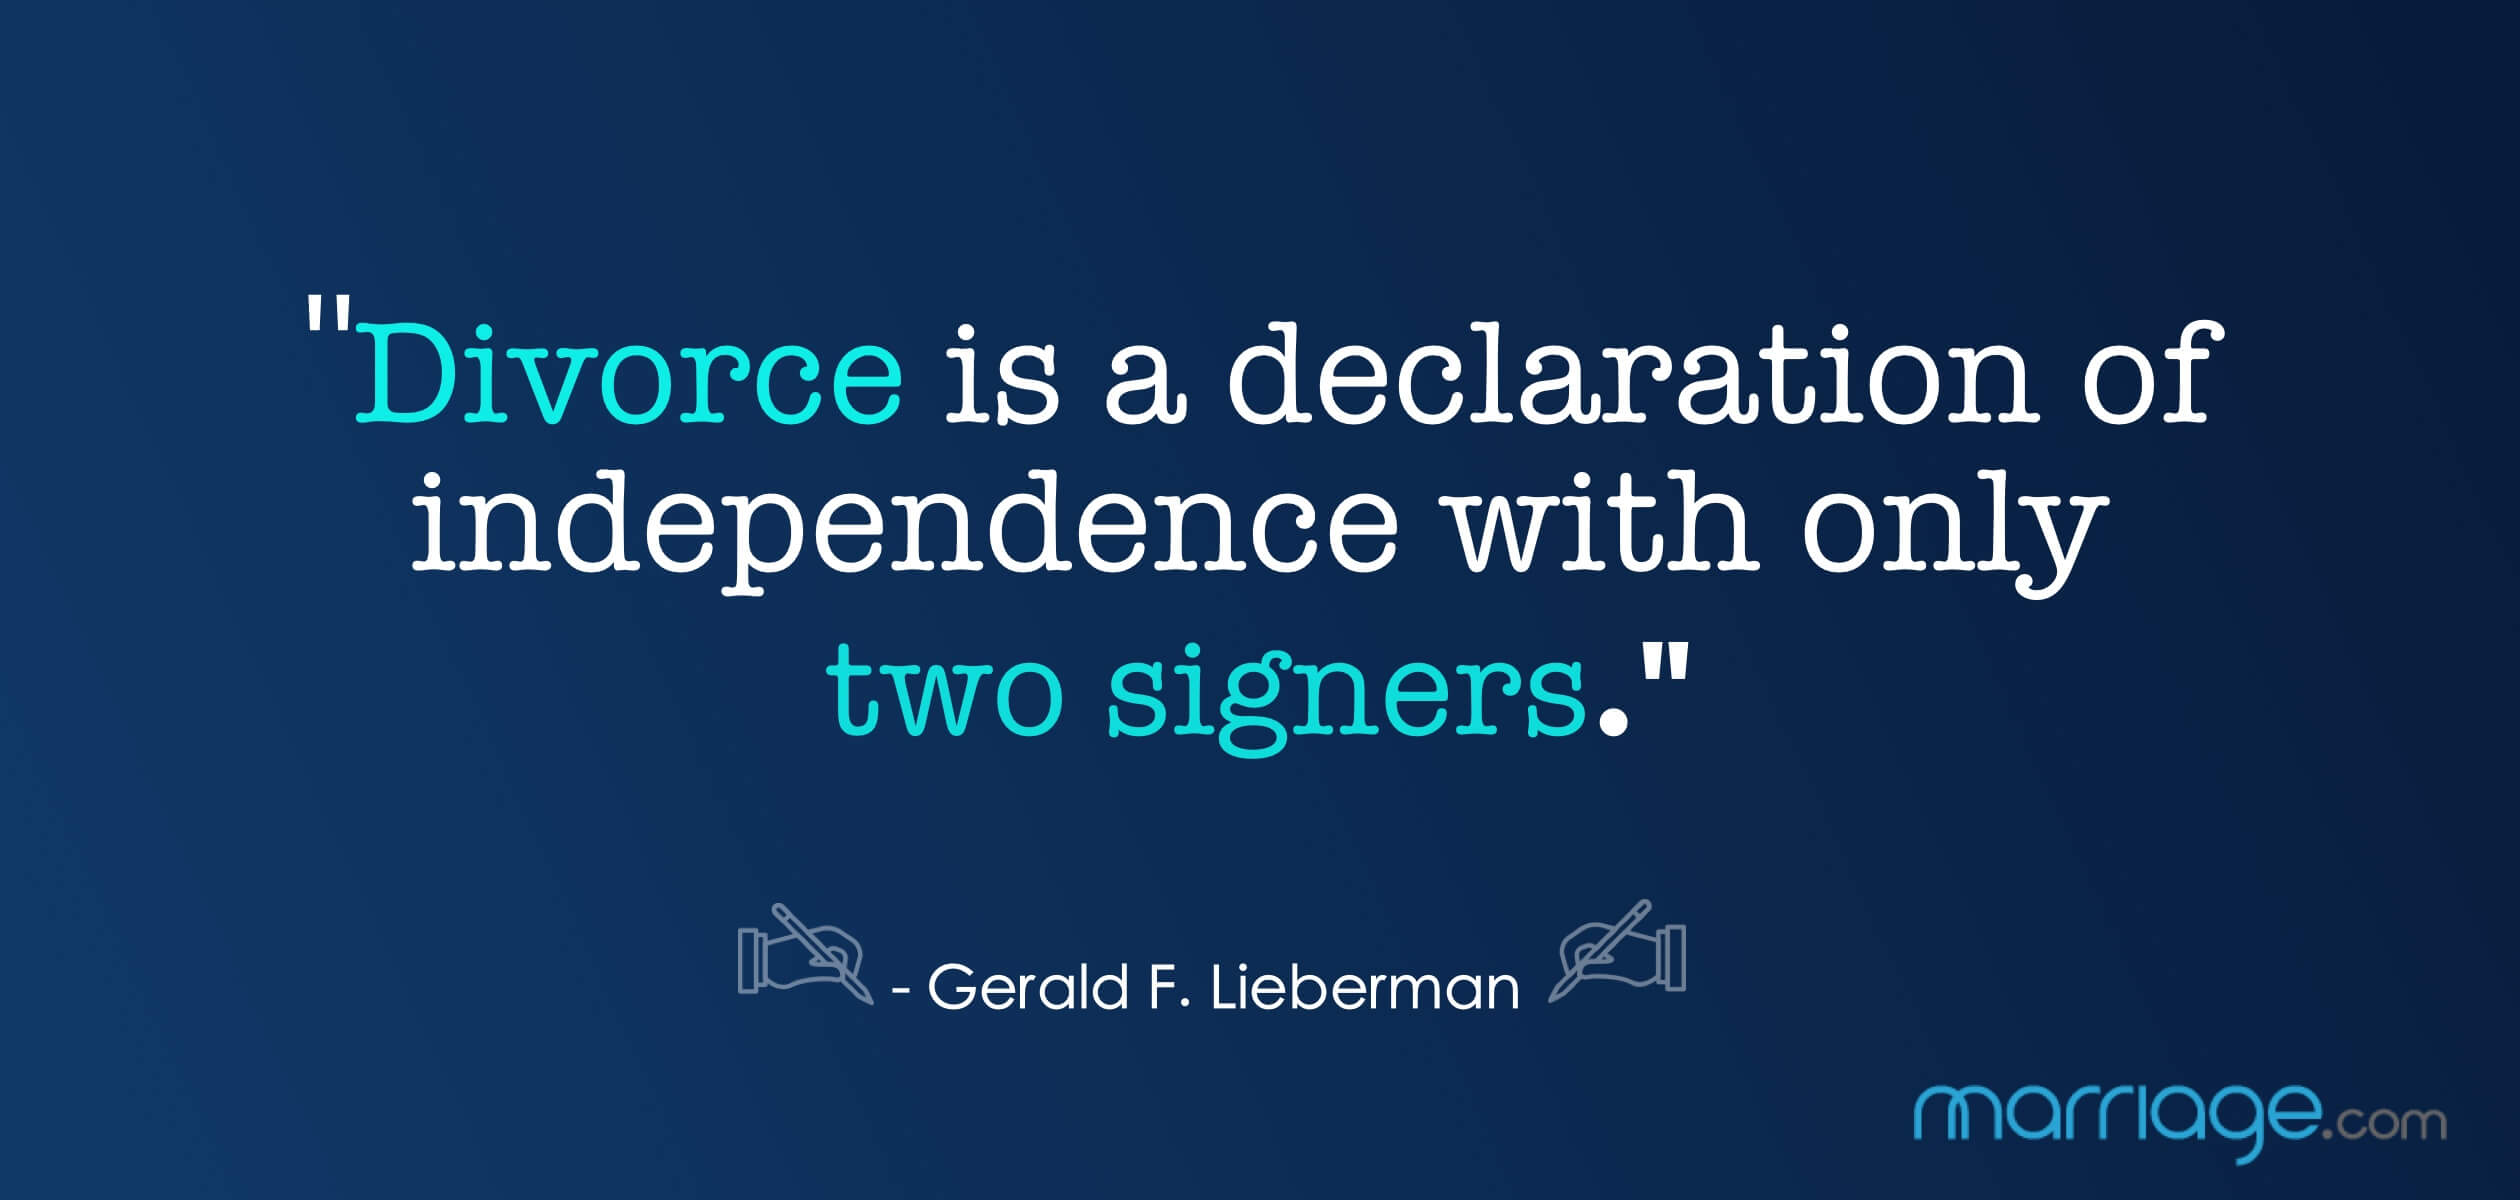 ""\""""Divorce is a declaration of independence with only two signers."""" - Gerald F. Lieberman""2520|1200|?|en|2|7d67955cbc48614710064bc8d4b58759|False|UNLIKELY|0.37581637501716614